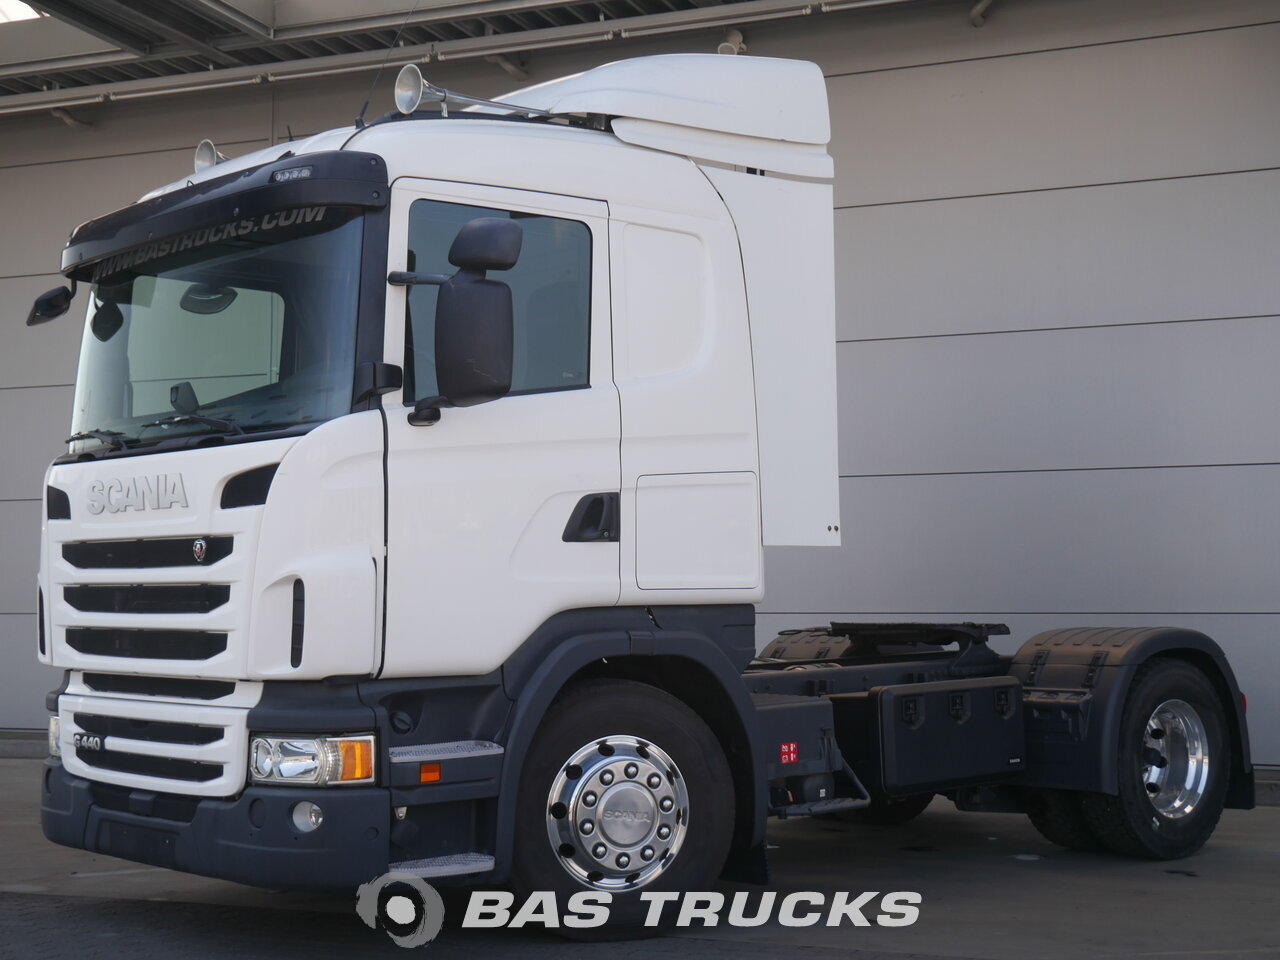 For sale at BAS Trucks: Scania G440 4X2 03/2013